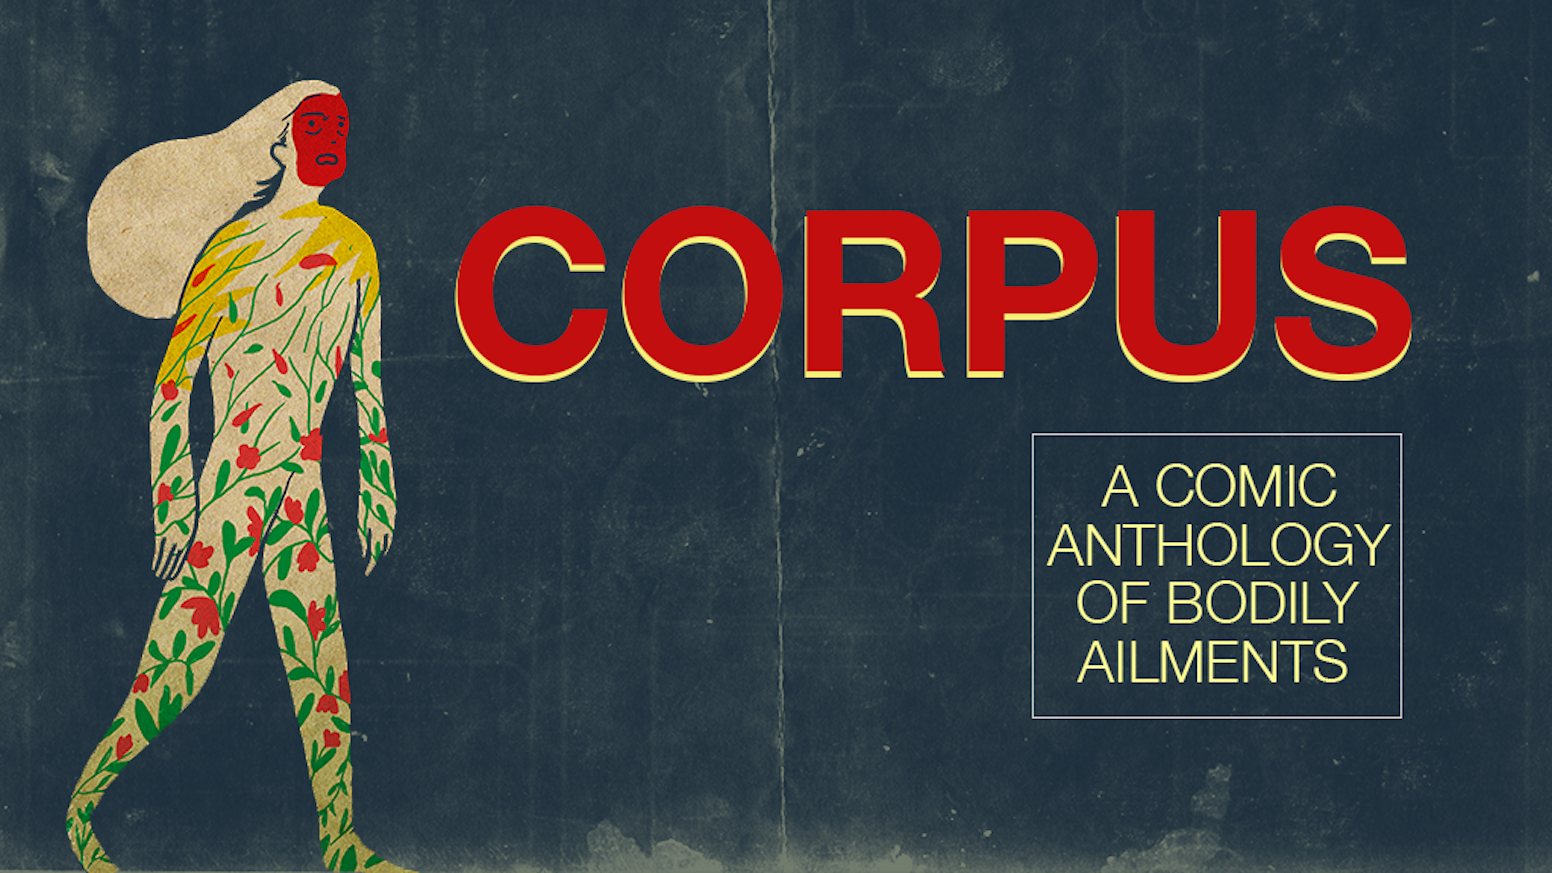 CORPUS: A COMIC ANTHOLOGY OF BODILY AILMENTS is a comic anthology about mental illness, physical illness and healthcare experiences.